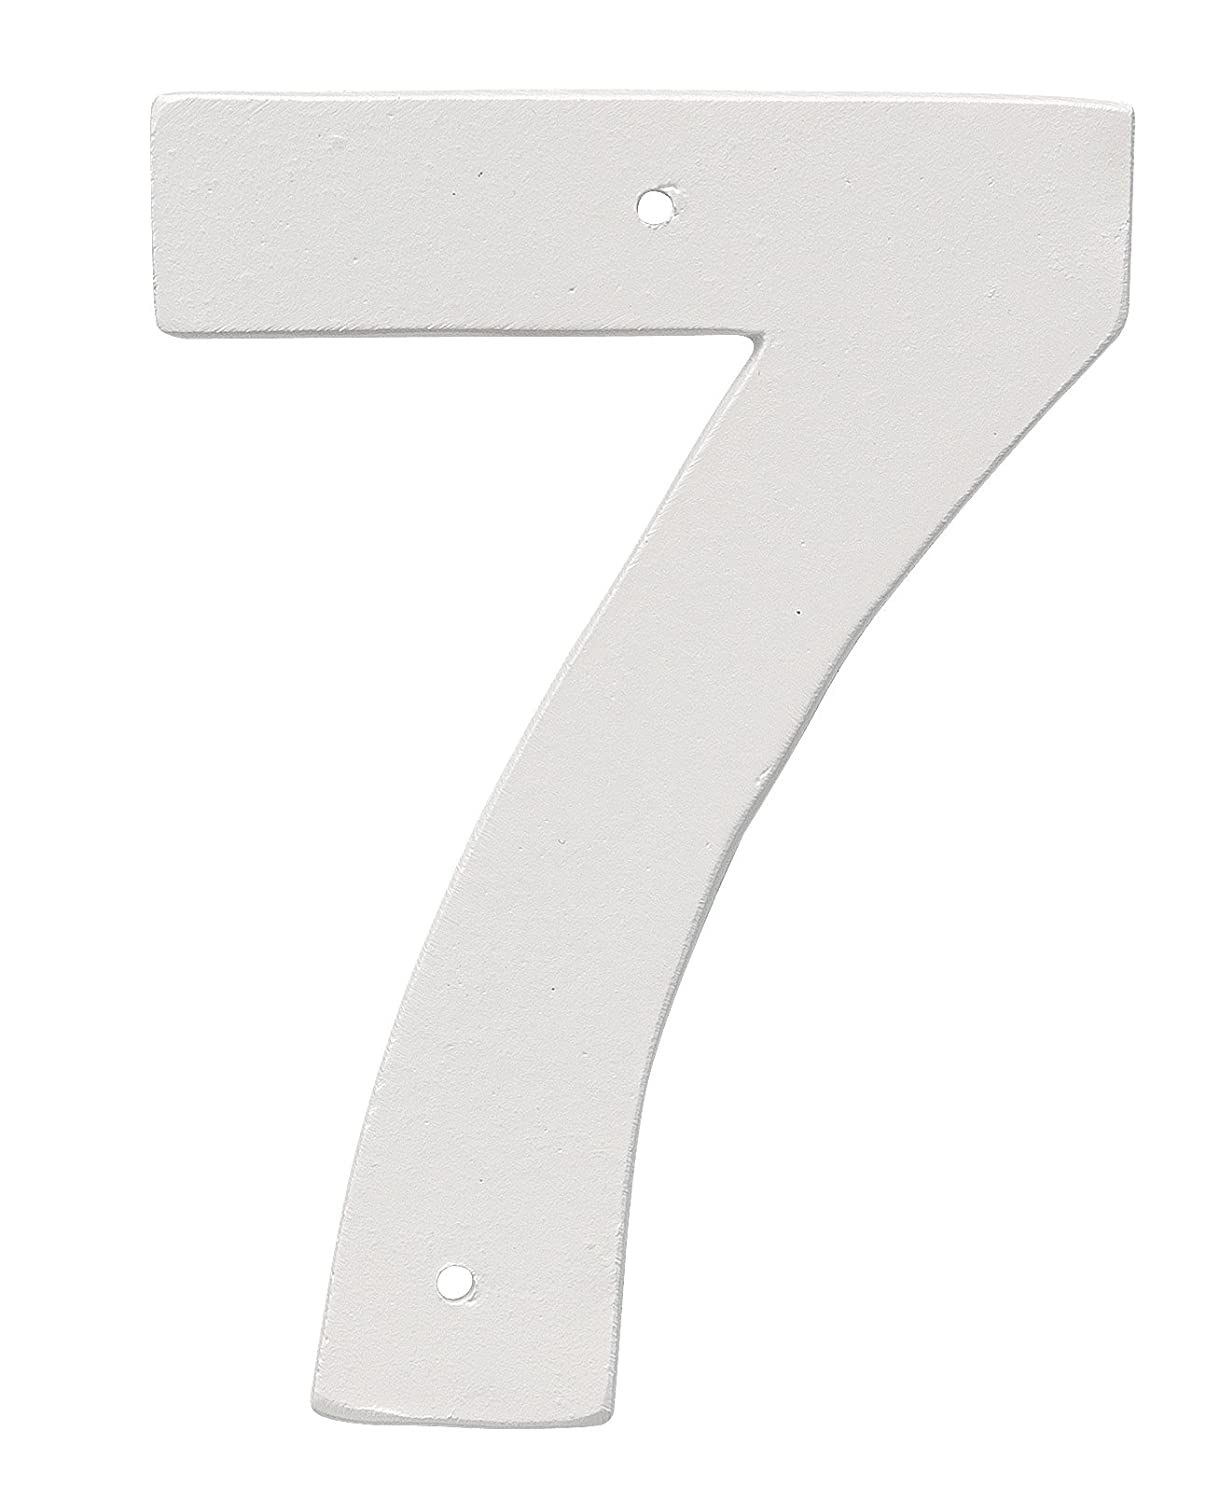 Montague Metal Products 10' Aluminum House Number 7 Outdoor Plaque, Medium, White HHN-10-7-W